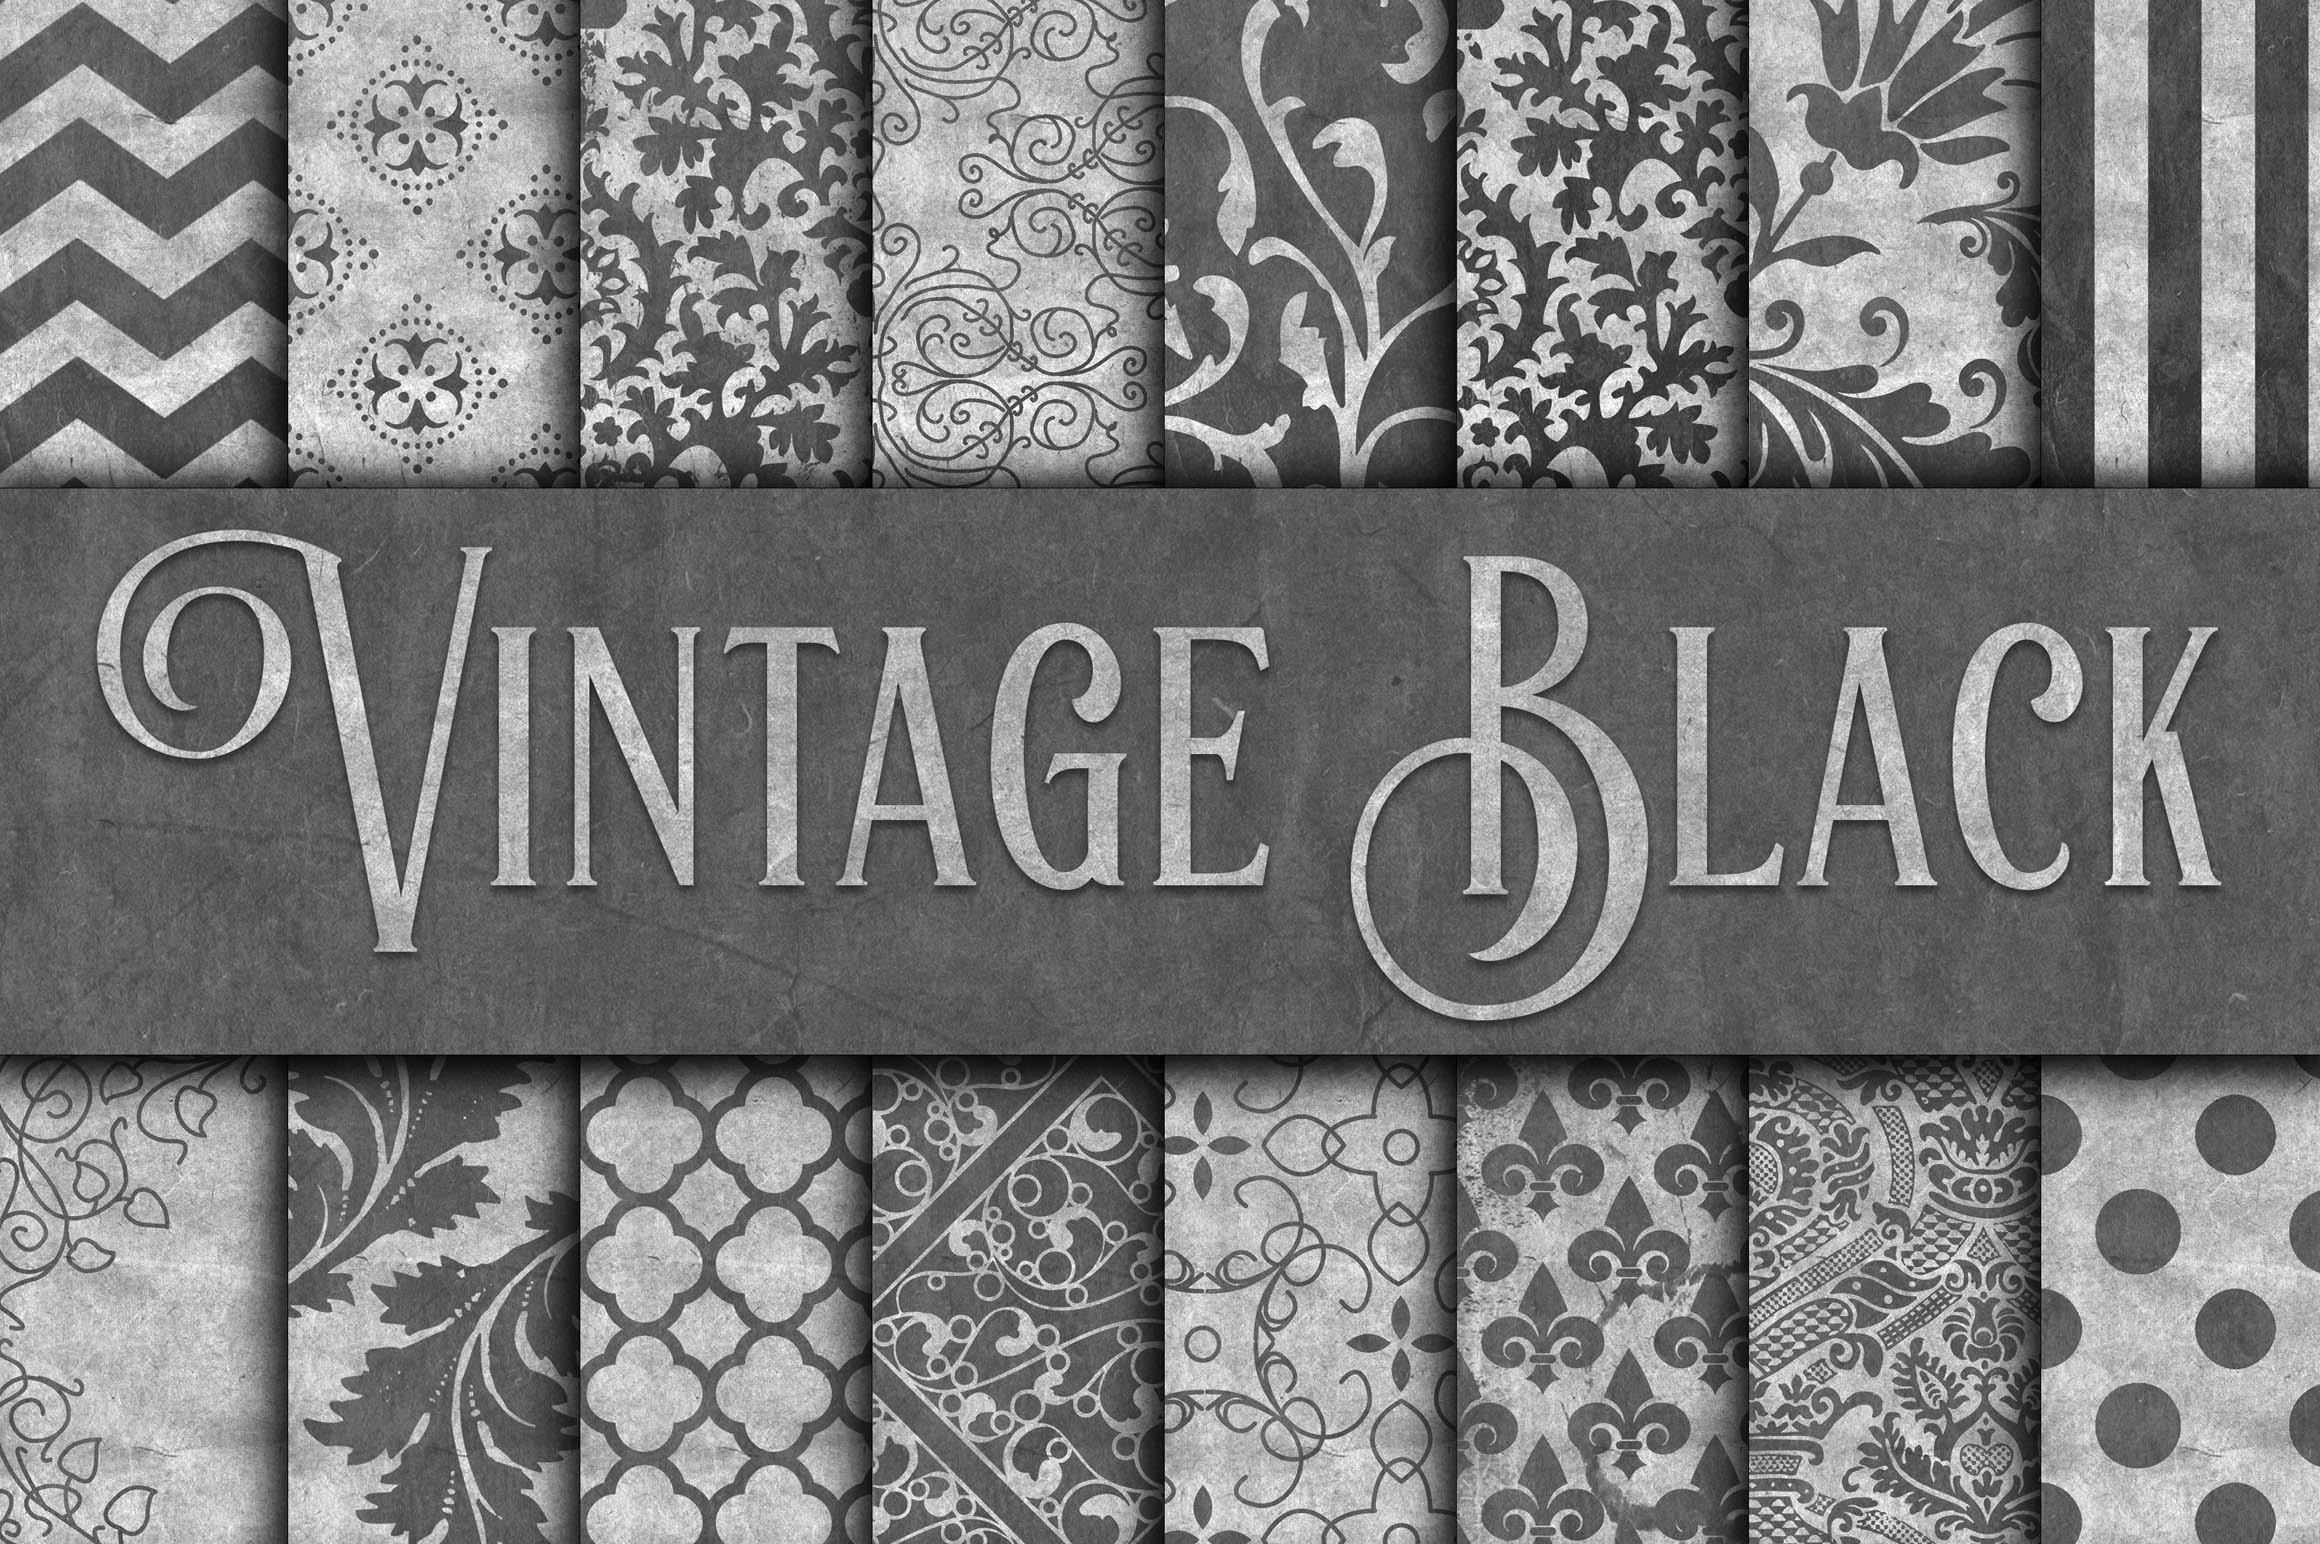 Vintage Black Digital Paper Graphic Backgrounds By oldmarketdesigns